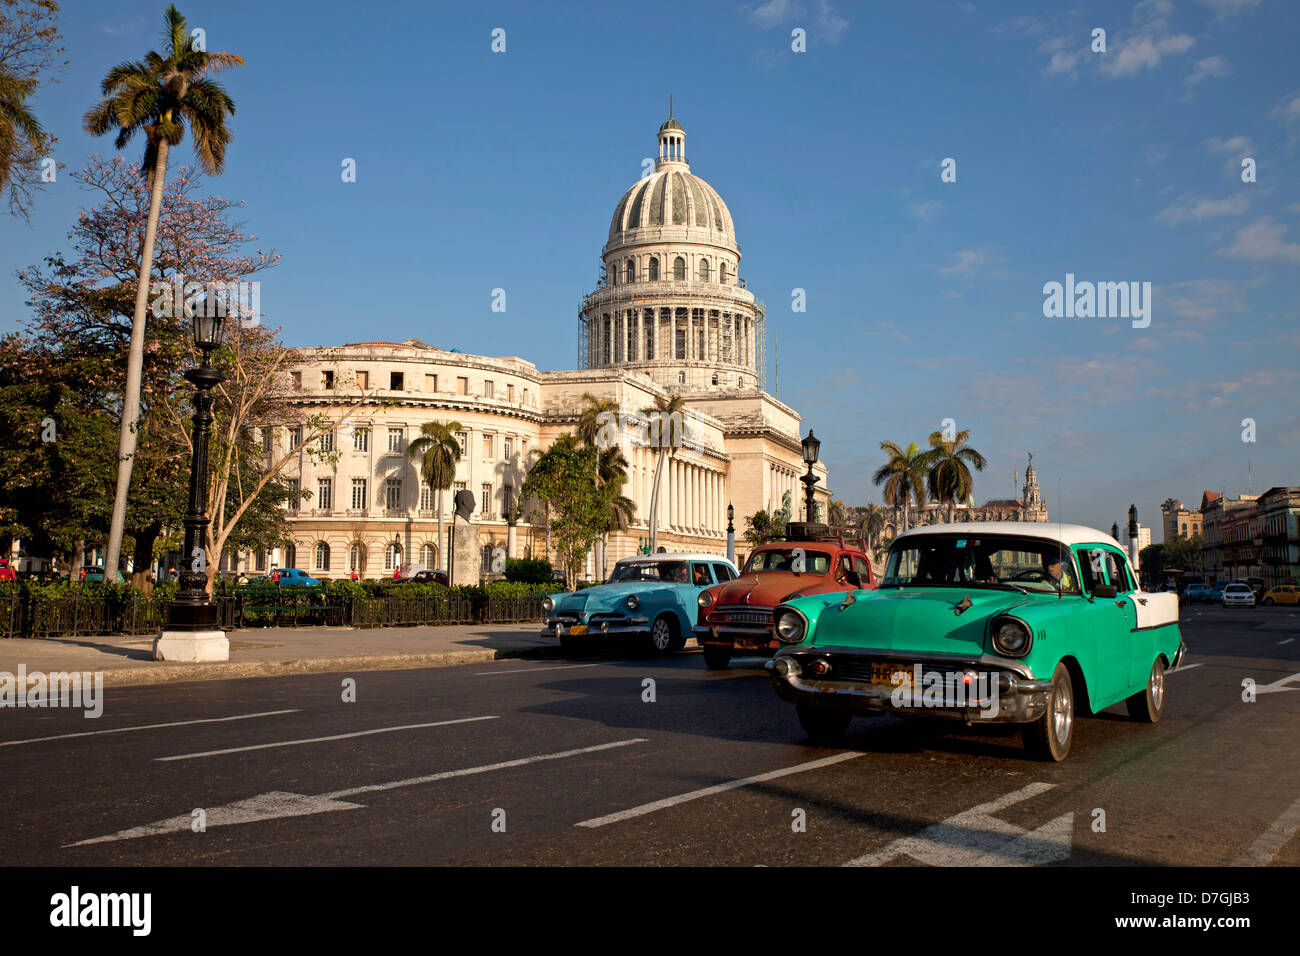 classic US cars and El Capitolio in central Havana, Cuba, Caribbean Stock Photo